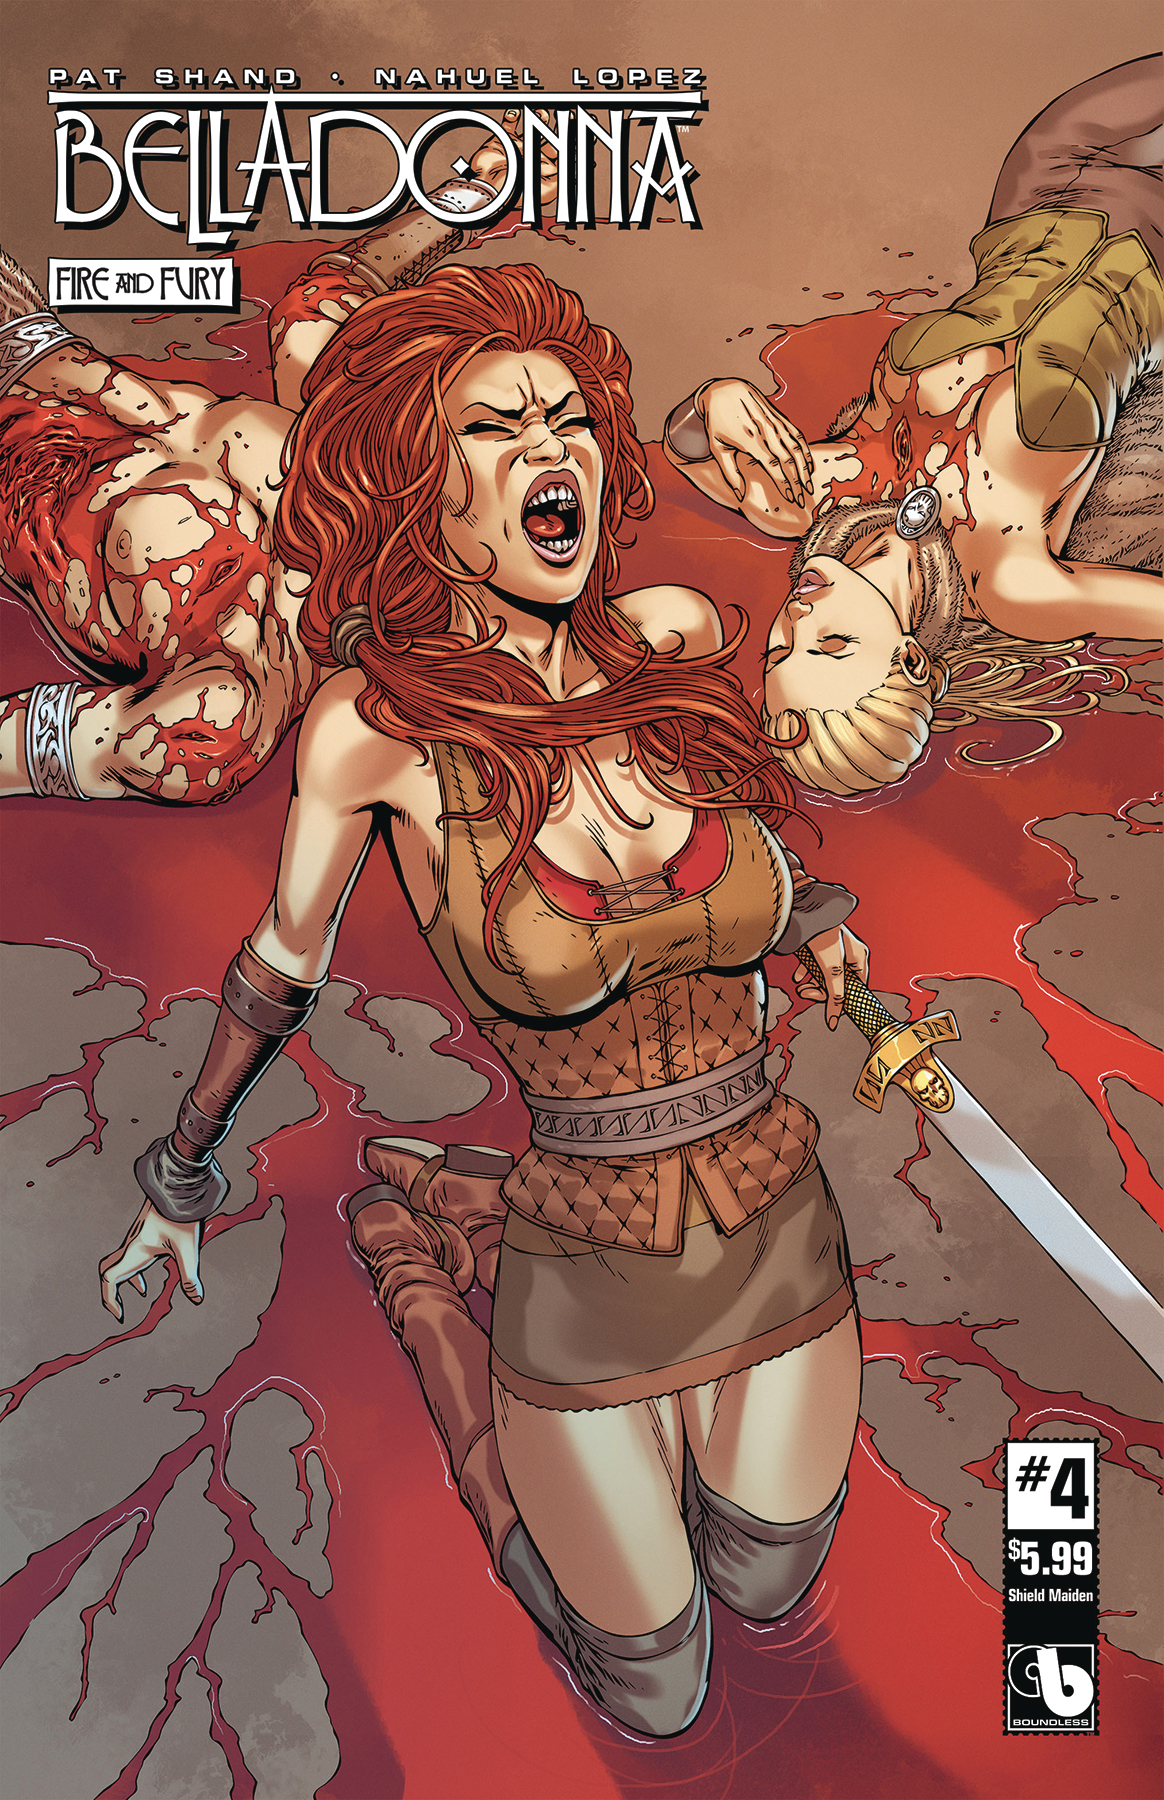 BELLADONNA FIRE FURY #4 SHIELD MAIDEN (MR)